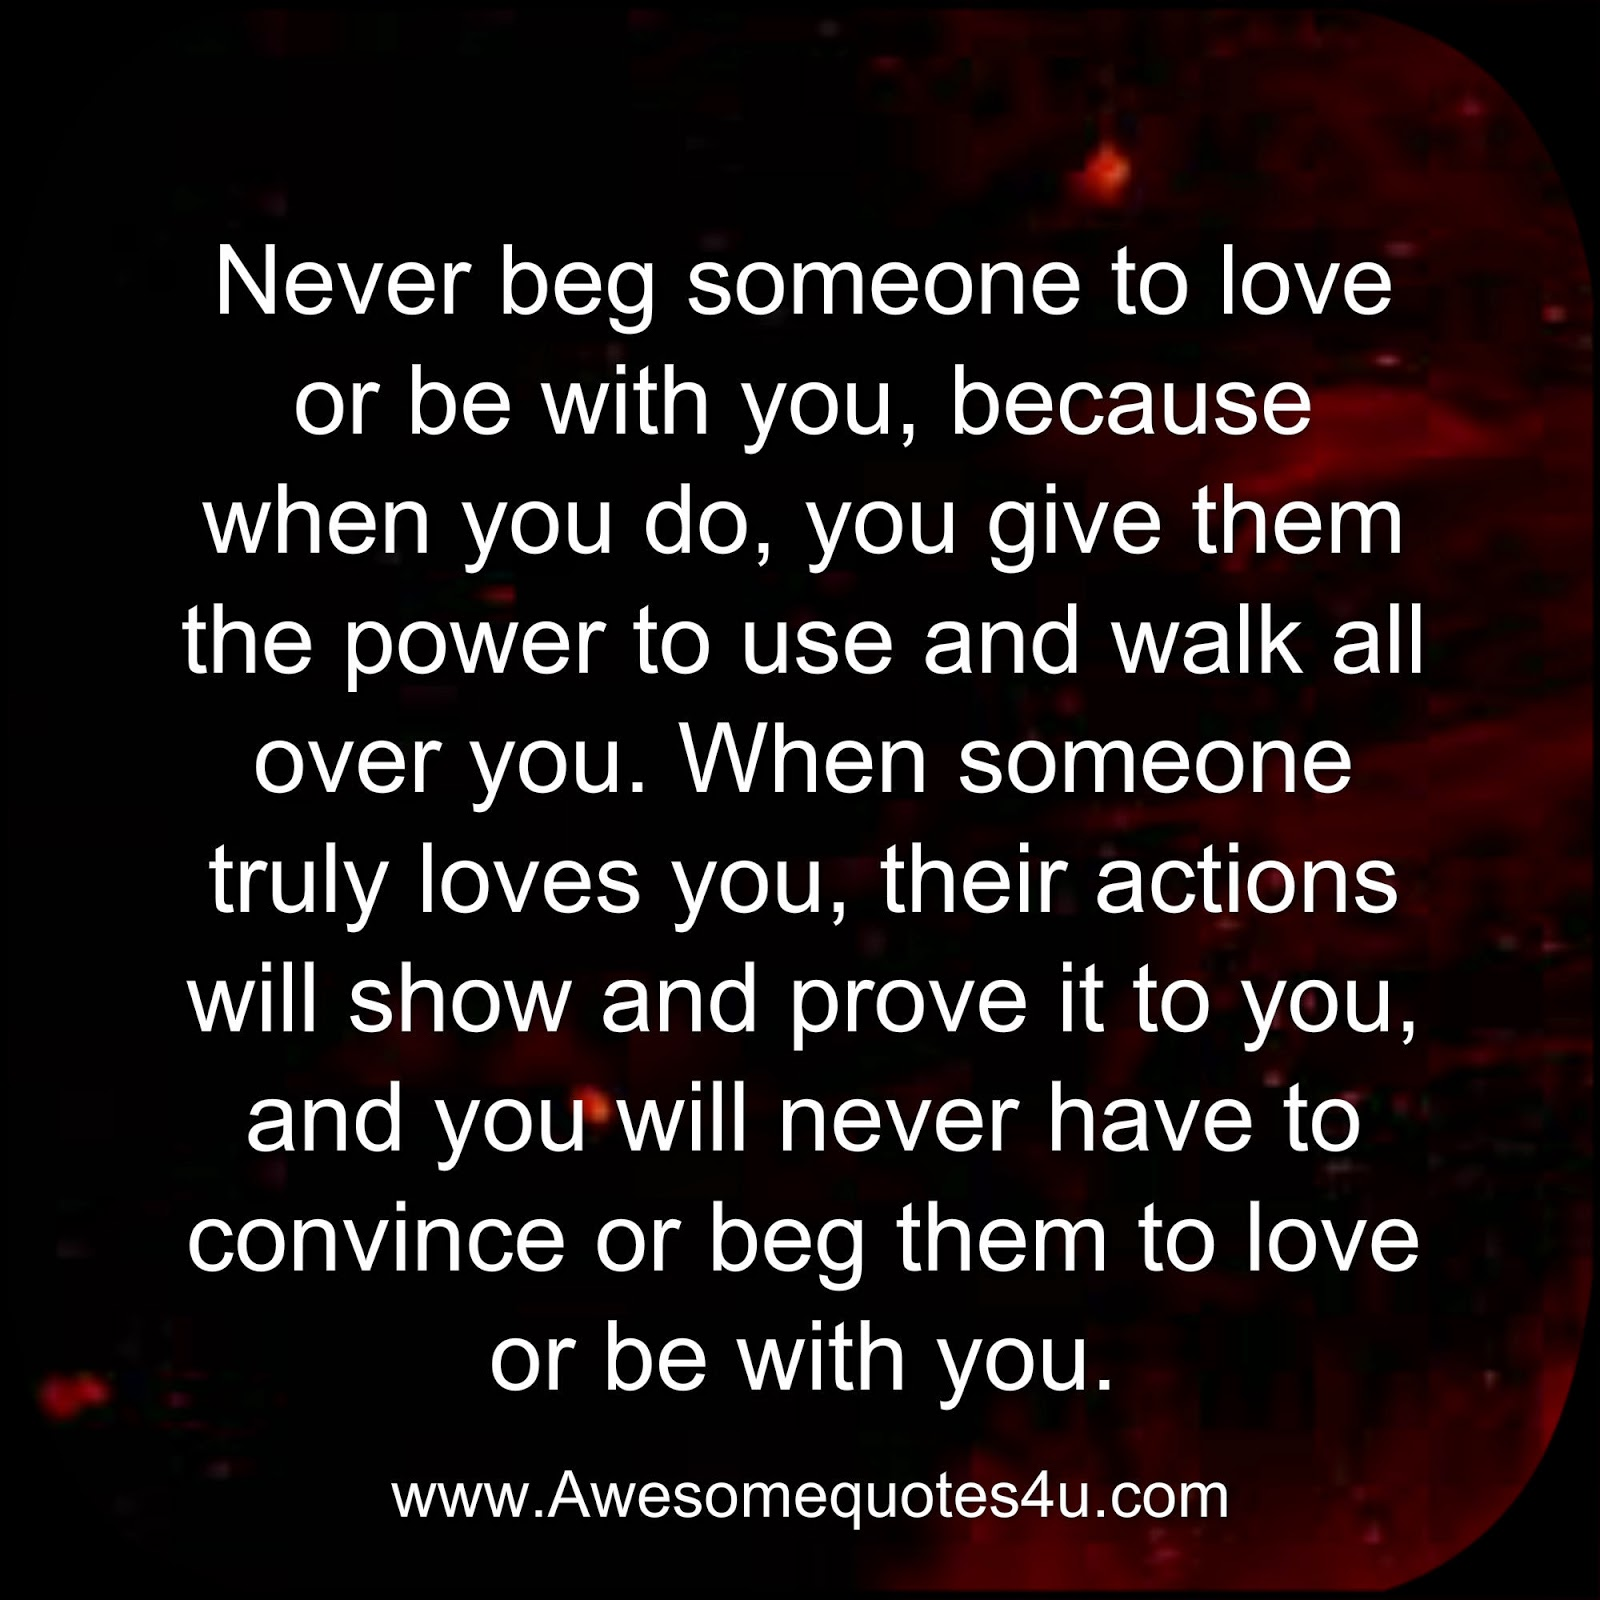 Quotes I Never Loved You Quotesgram: Never Beg For Love Quotes. QuotesGram